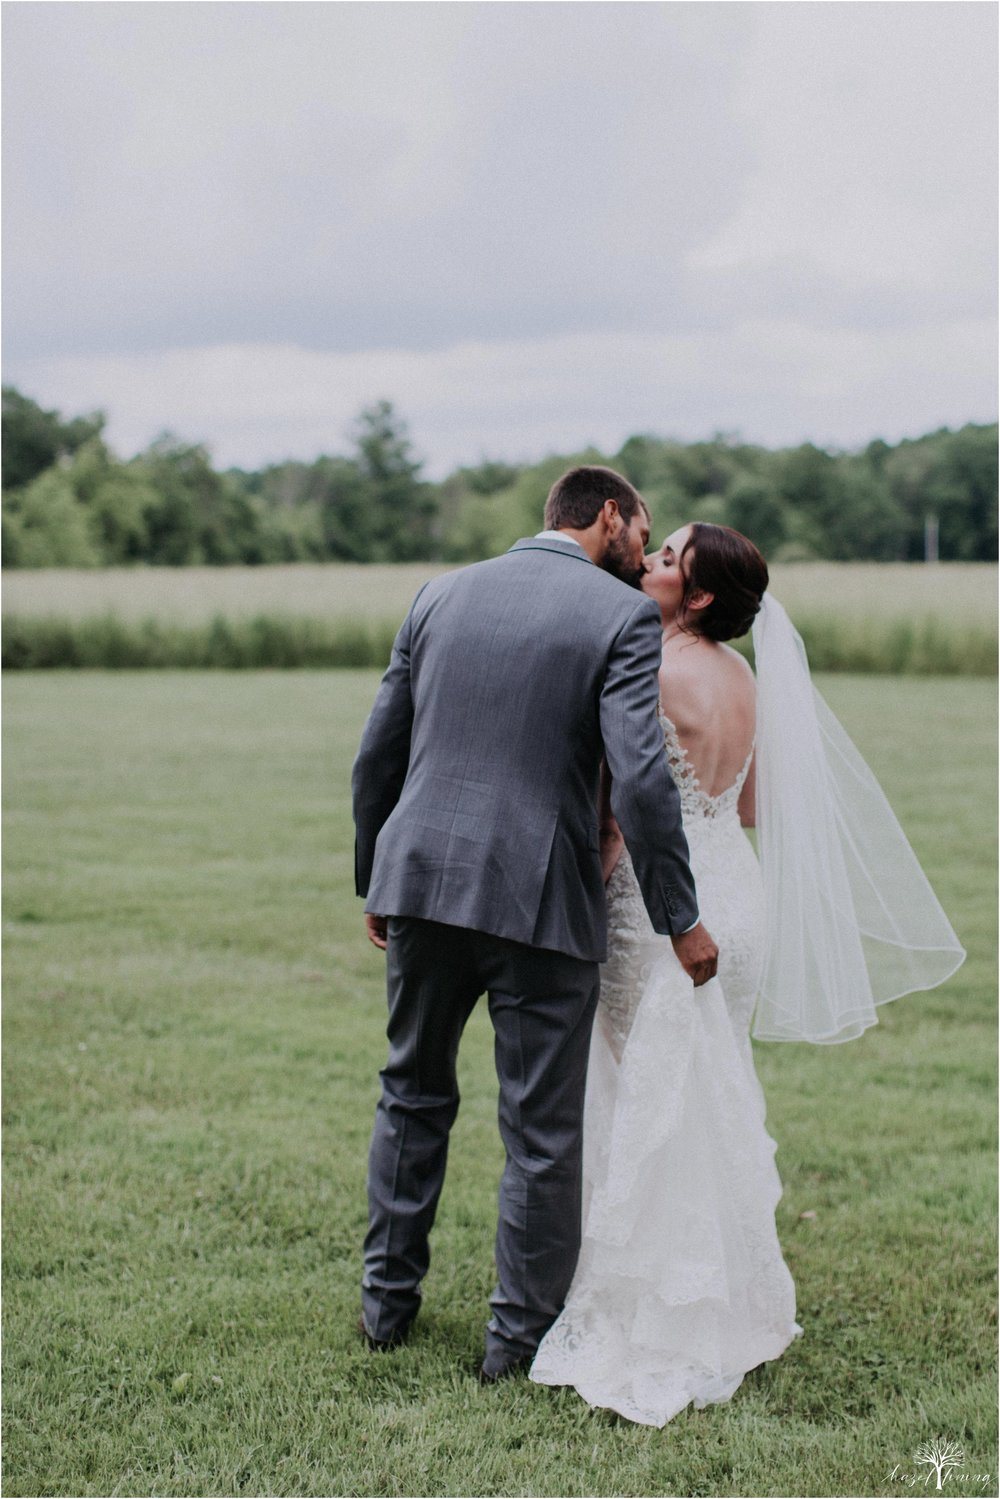 hazel-lining-travel-wedding-elopement-photography-lisa-landon-shoemaker-the-farm-bakery-and-events-bucks-county-quakertown-pennsylvania-summer-country-outdoor-farm-wedding_0084.jpg